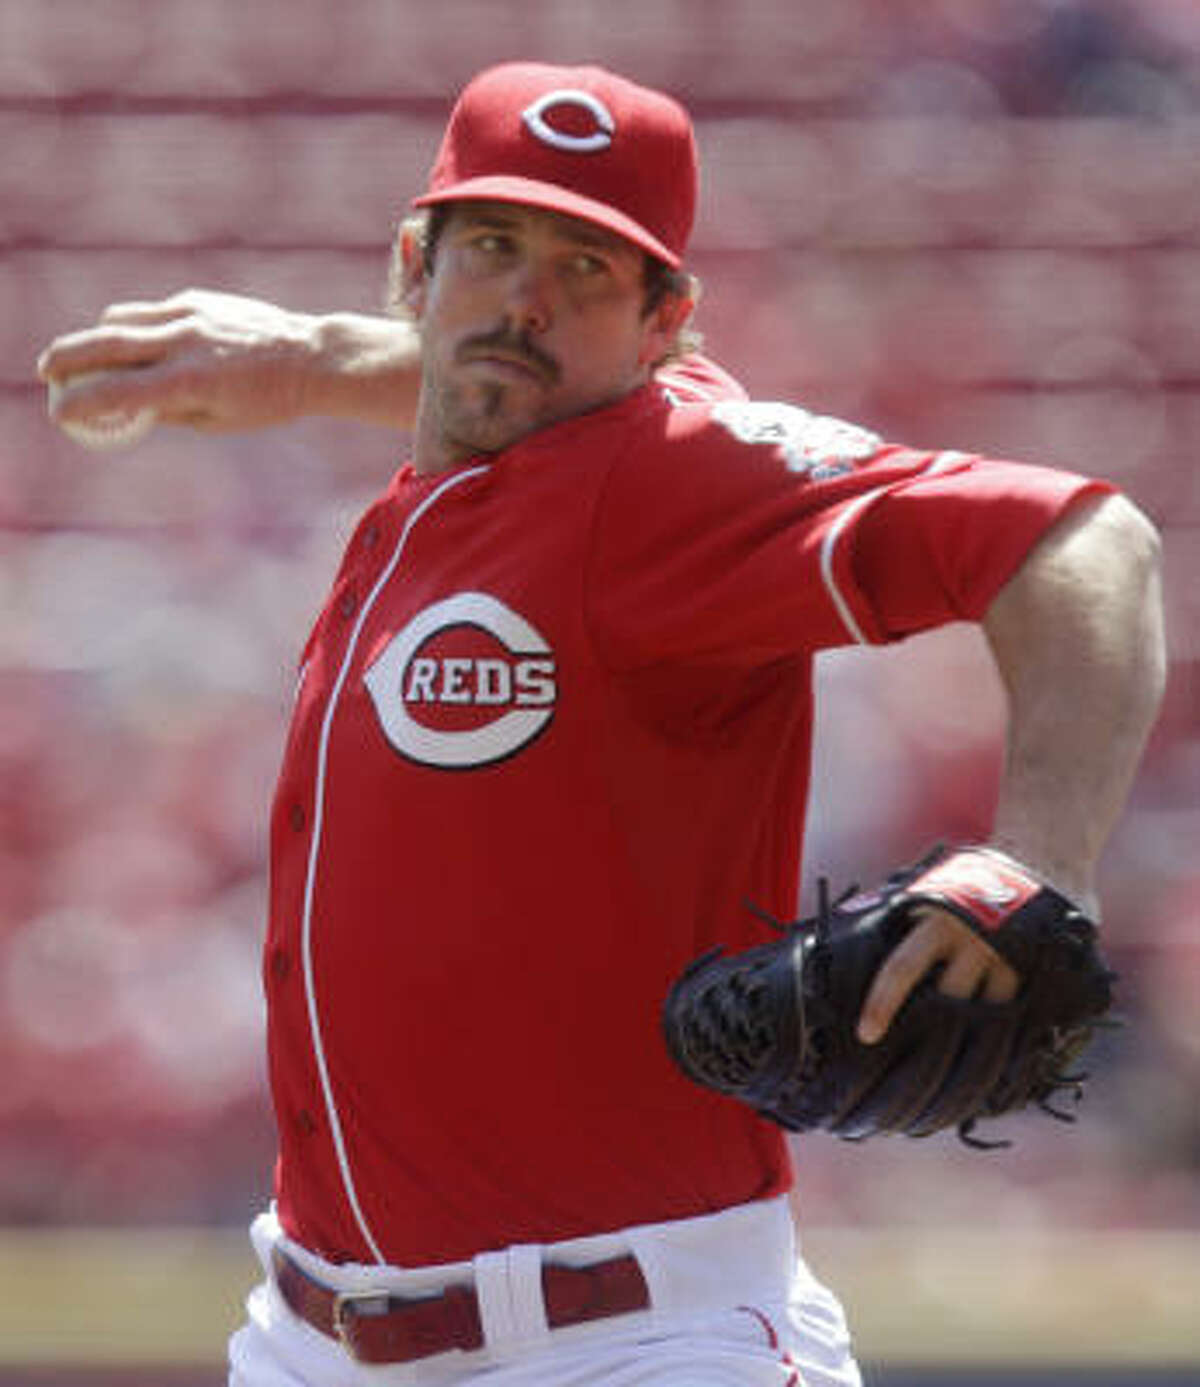 Cincinnati Reds starting pitcher Sam LeCure went five innings, giving up two runs and striking out six Astros.